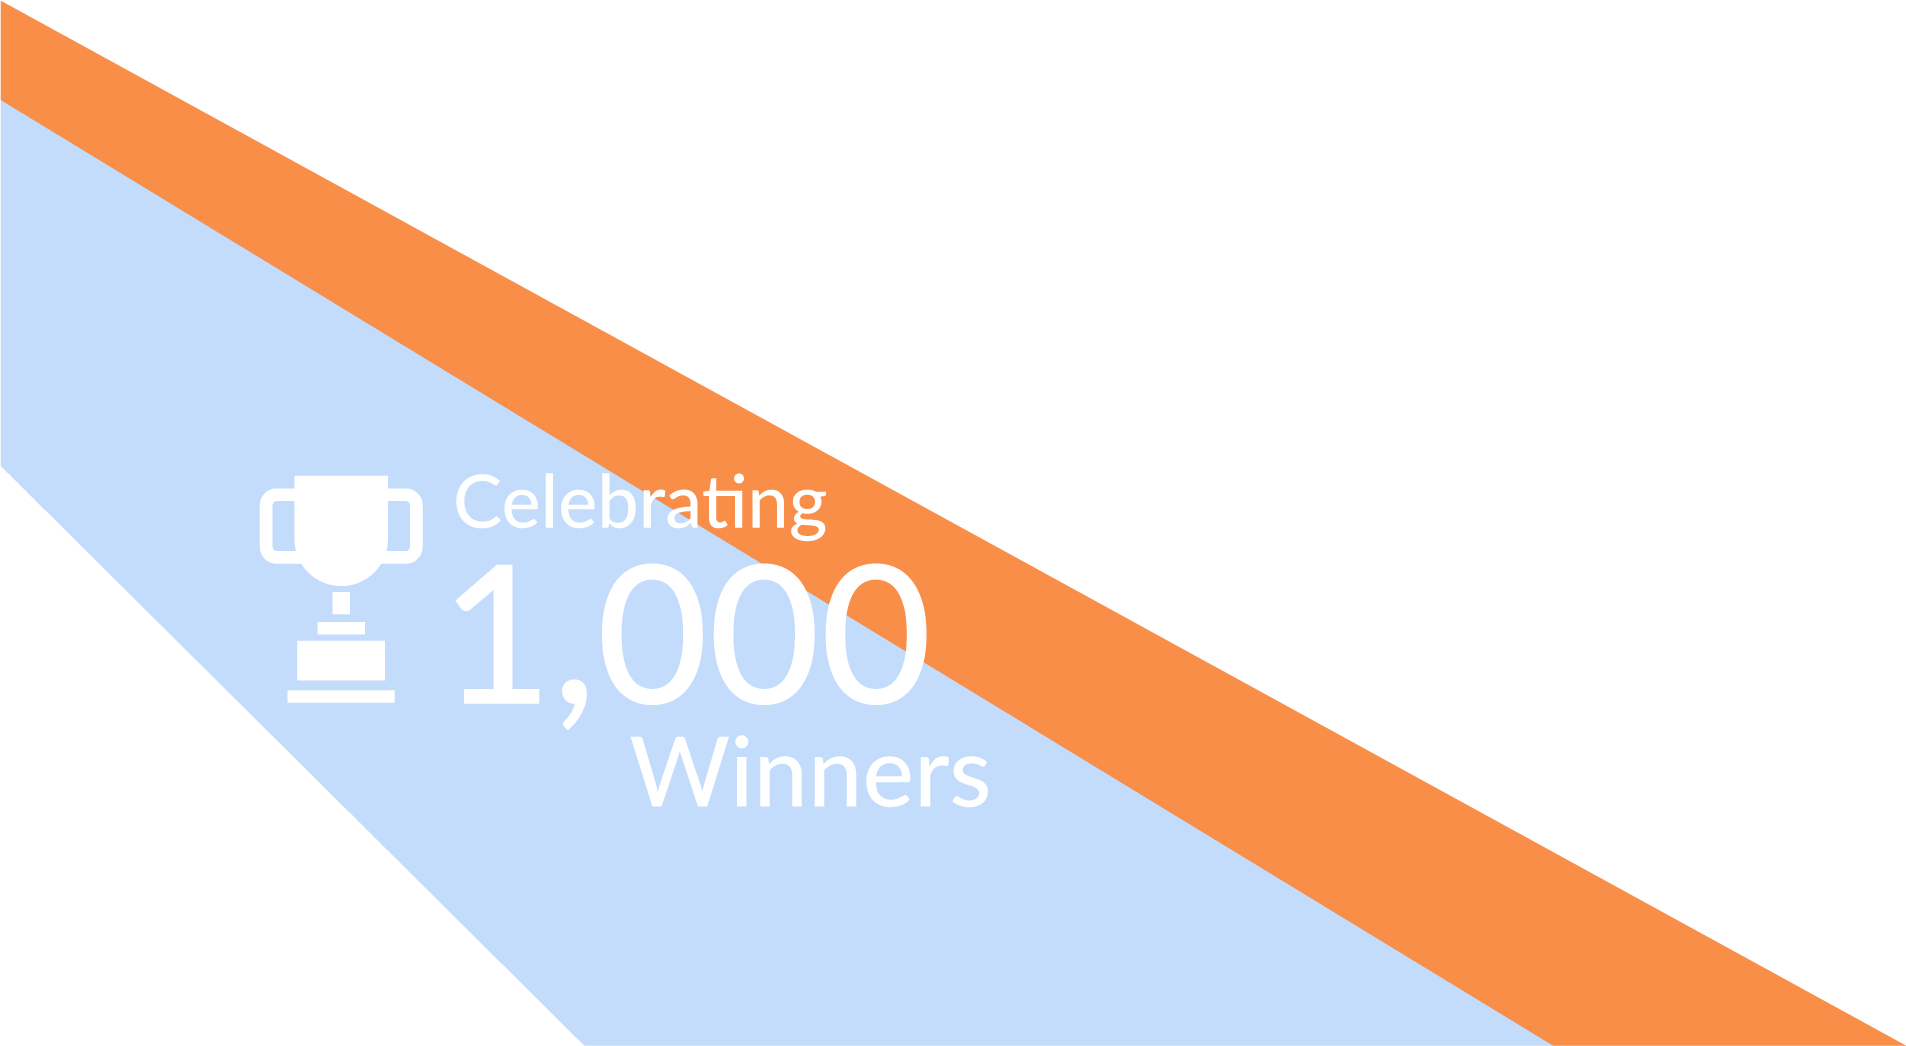 Celebrating 1,000 Winners